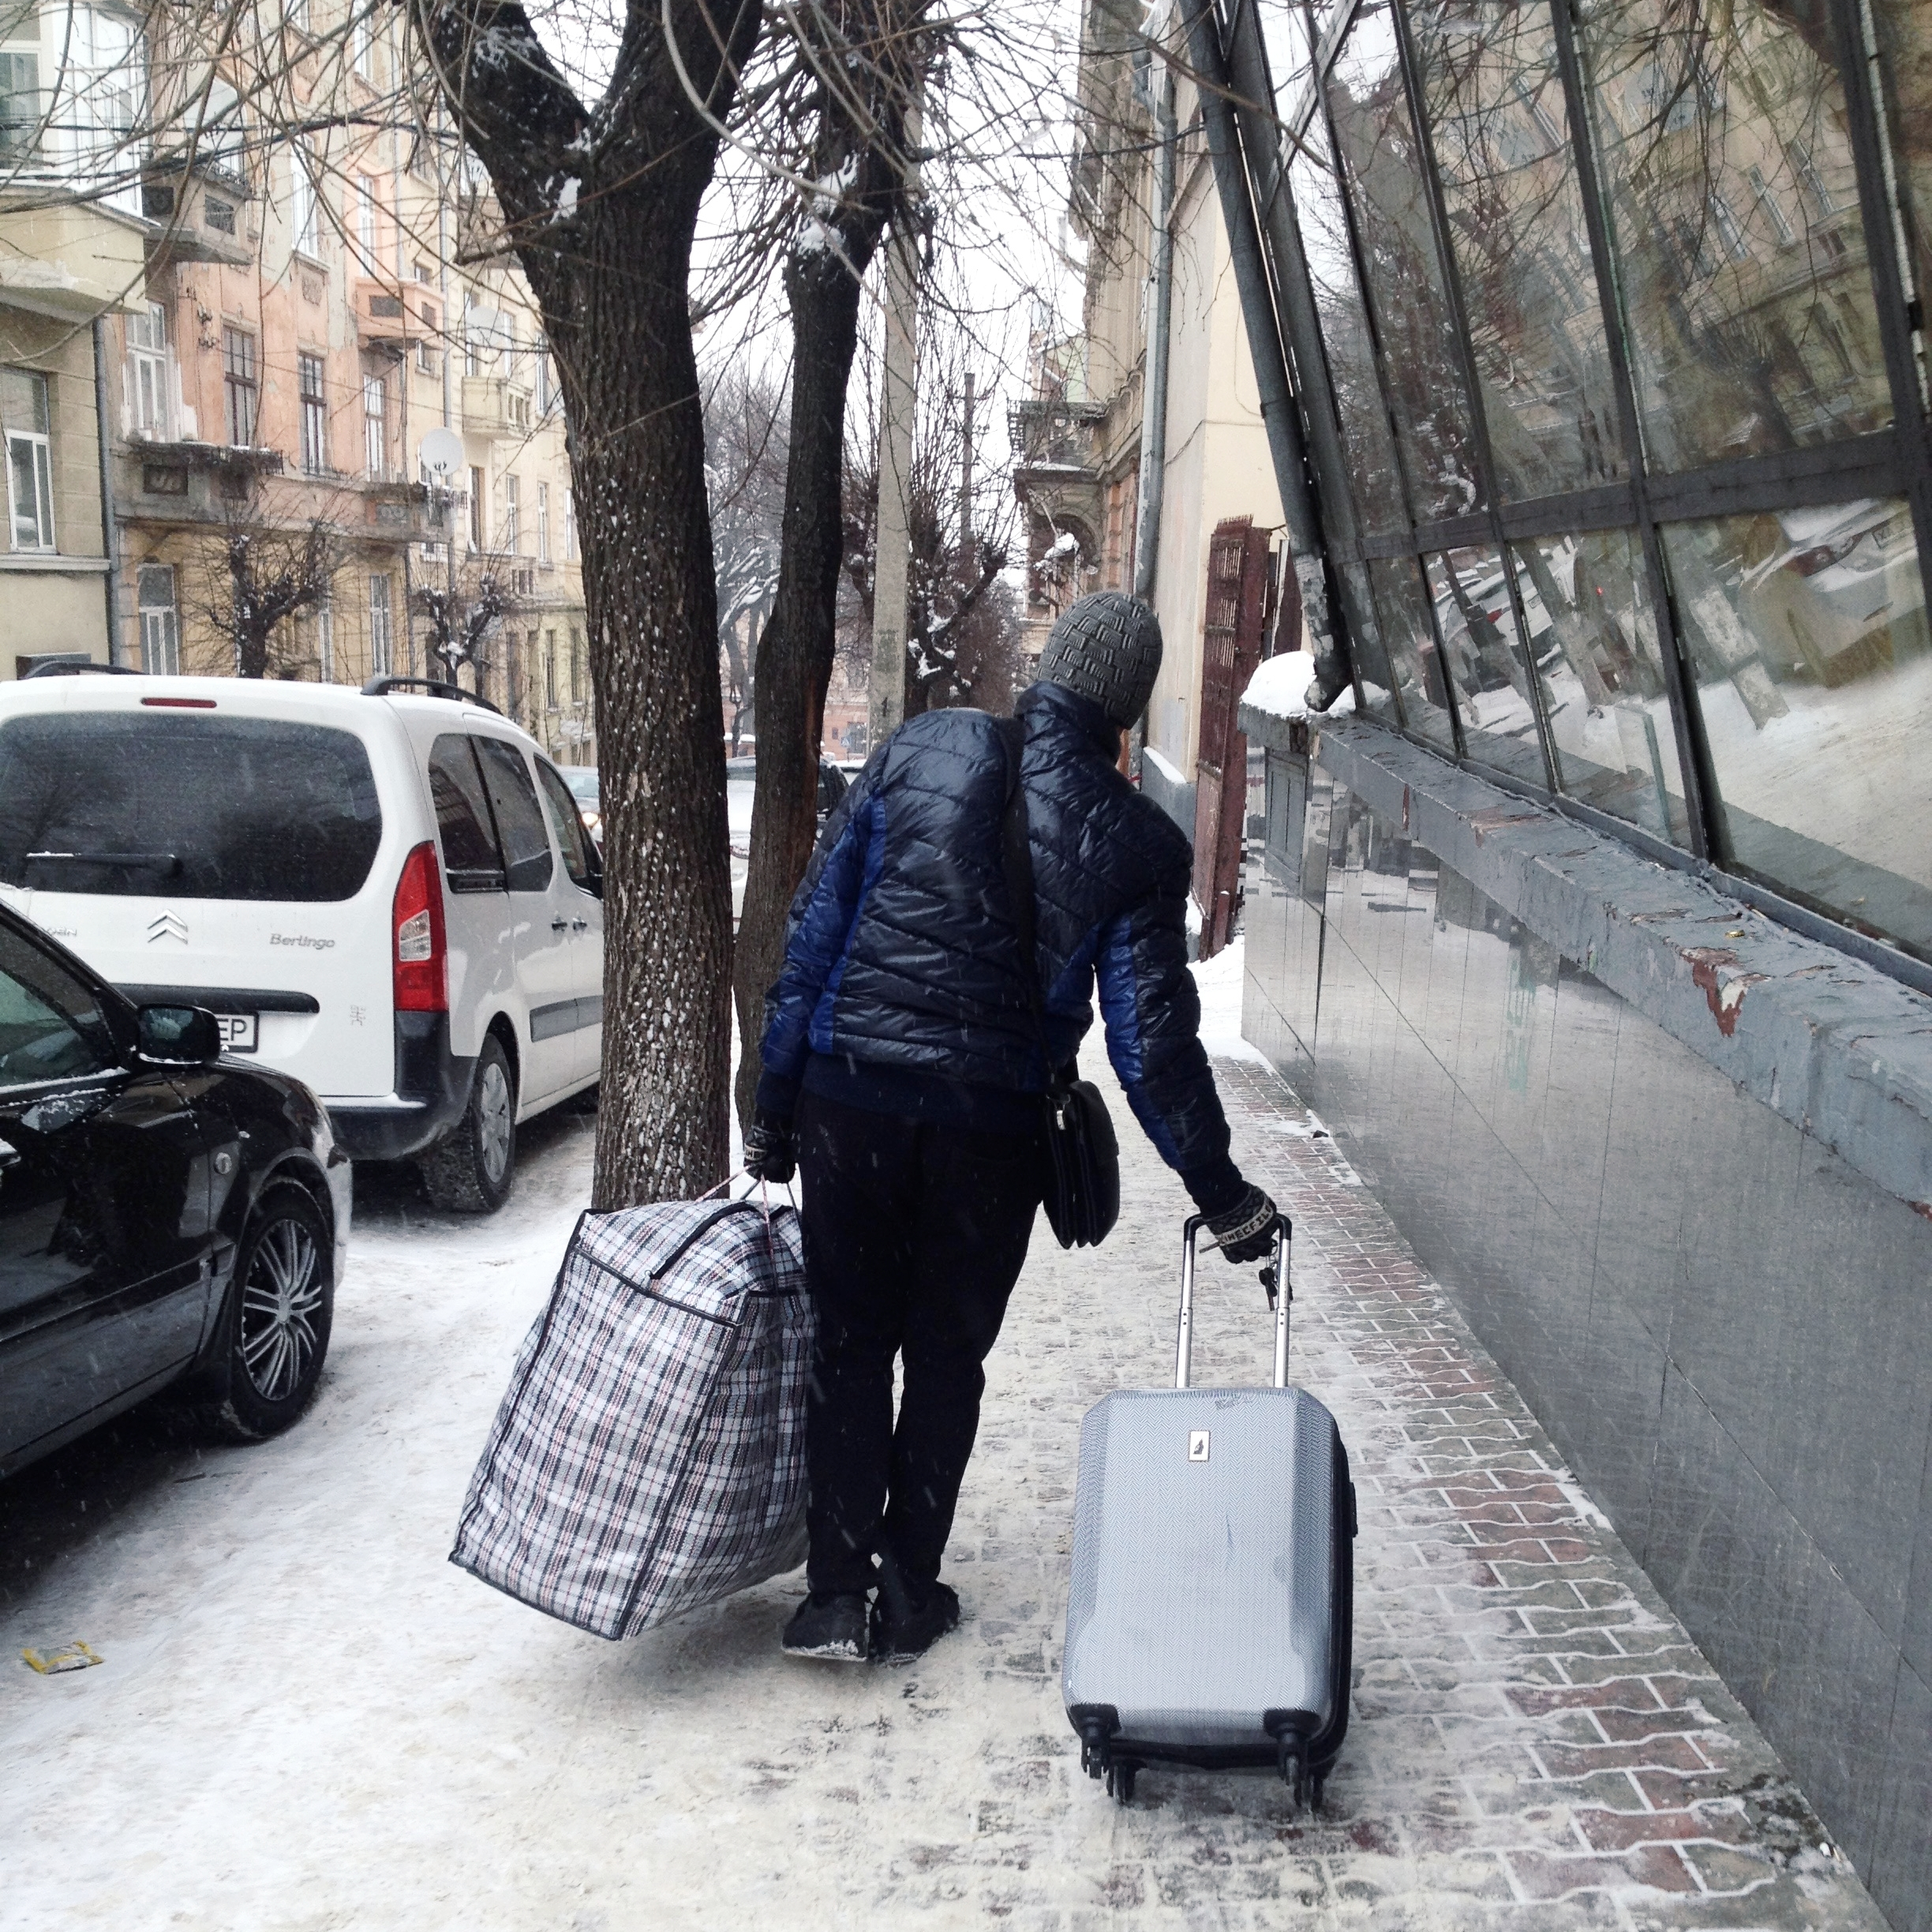 So long for now, Chernivtsi. Big thanks to Roman for managing to carry one of my infamous Ukrainian plaid bags that I filled with a surprising number of items.